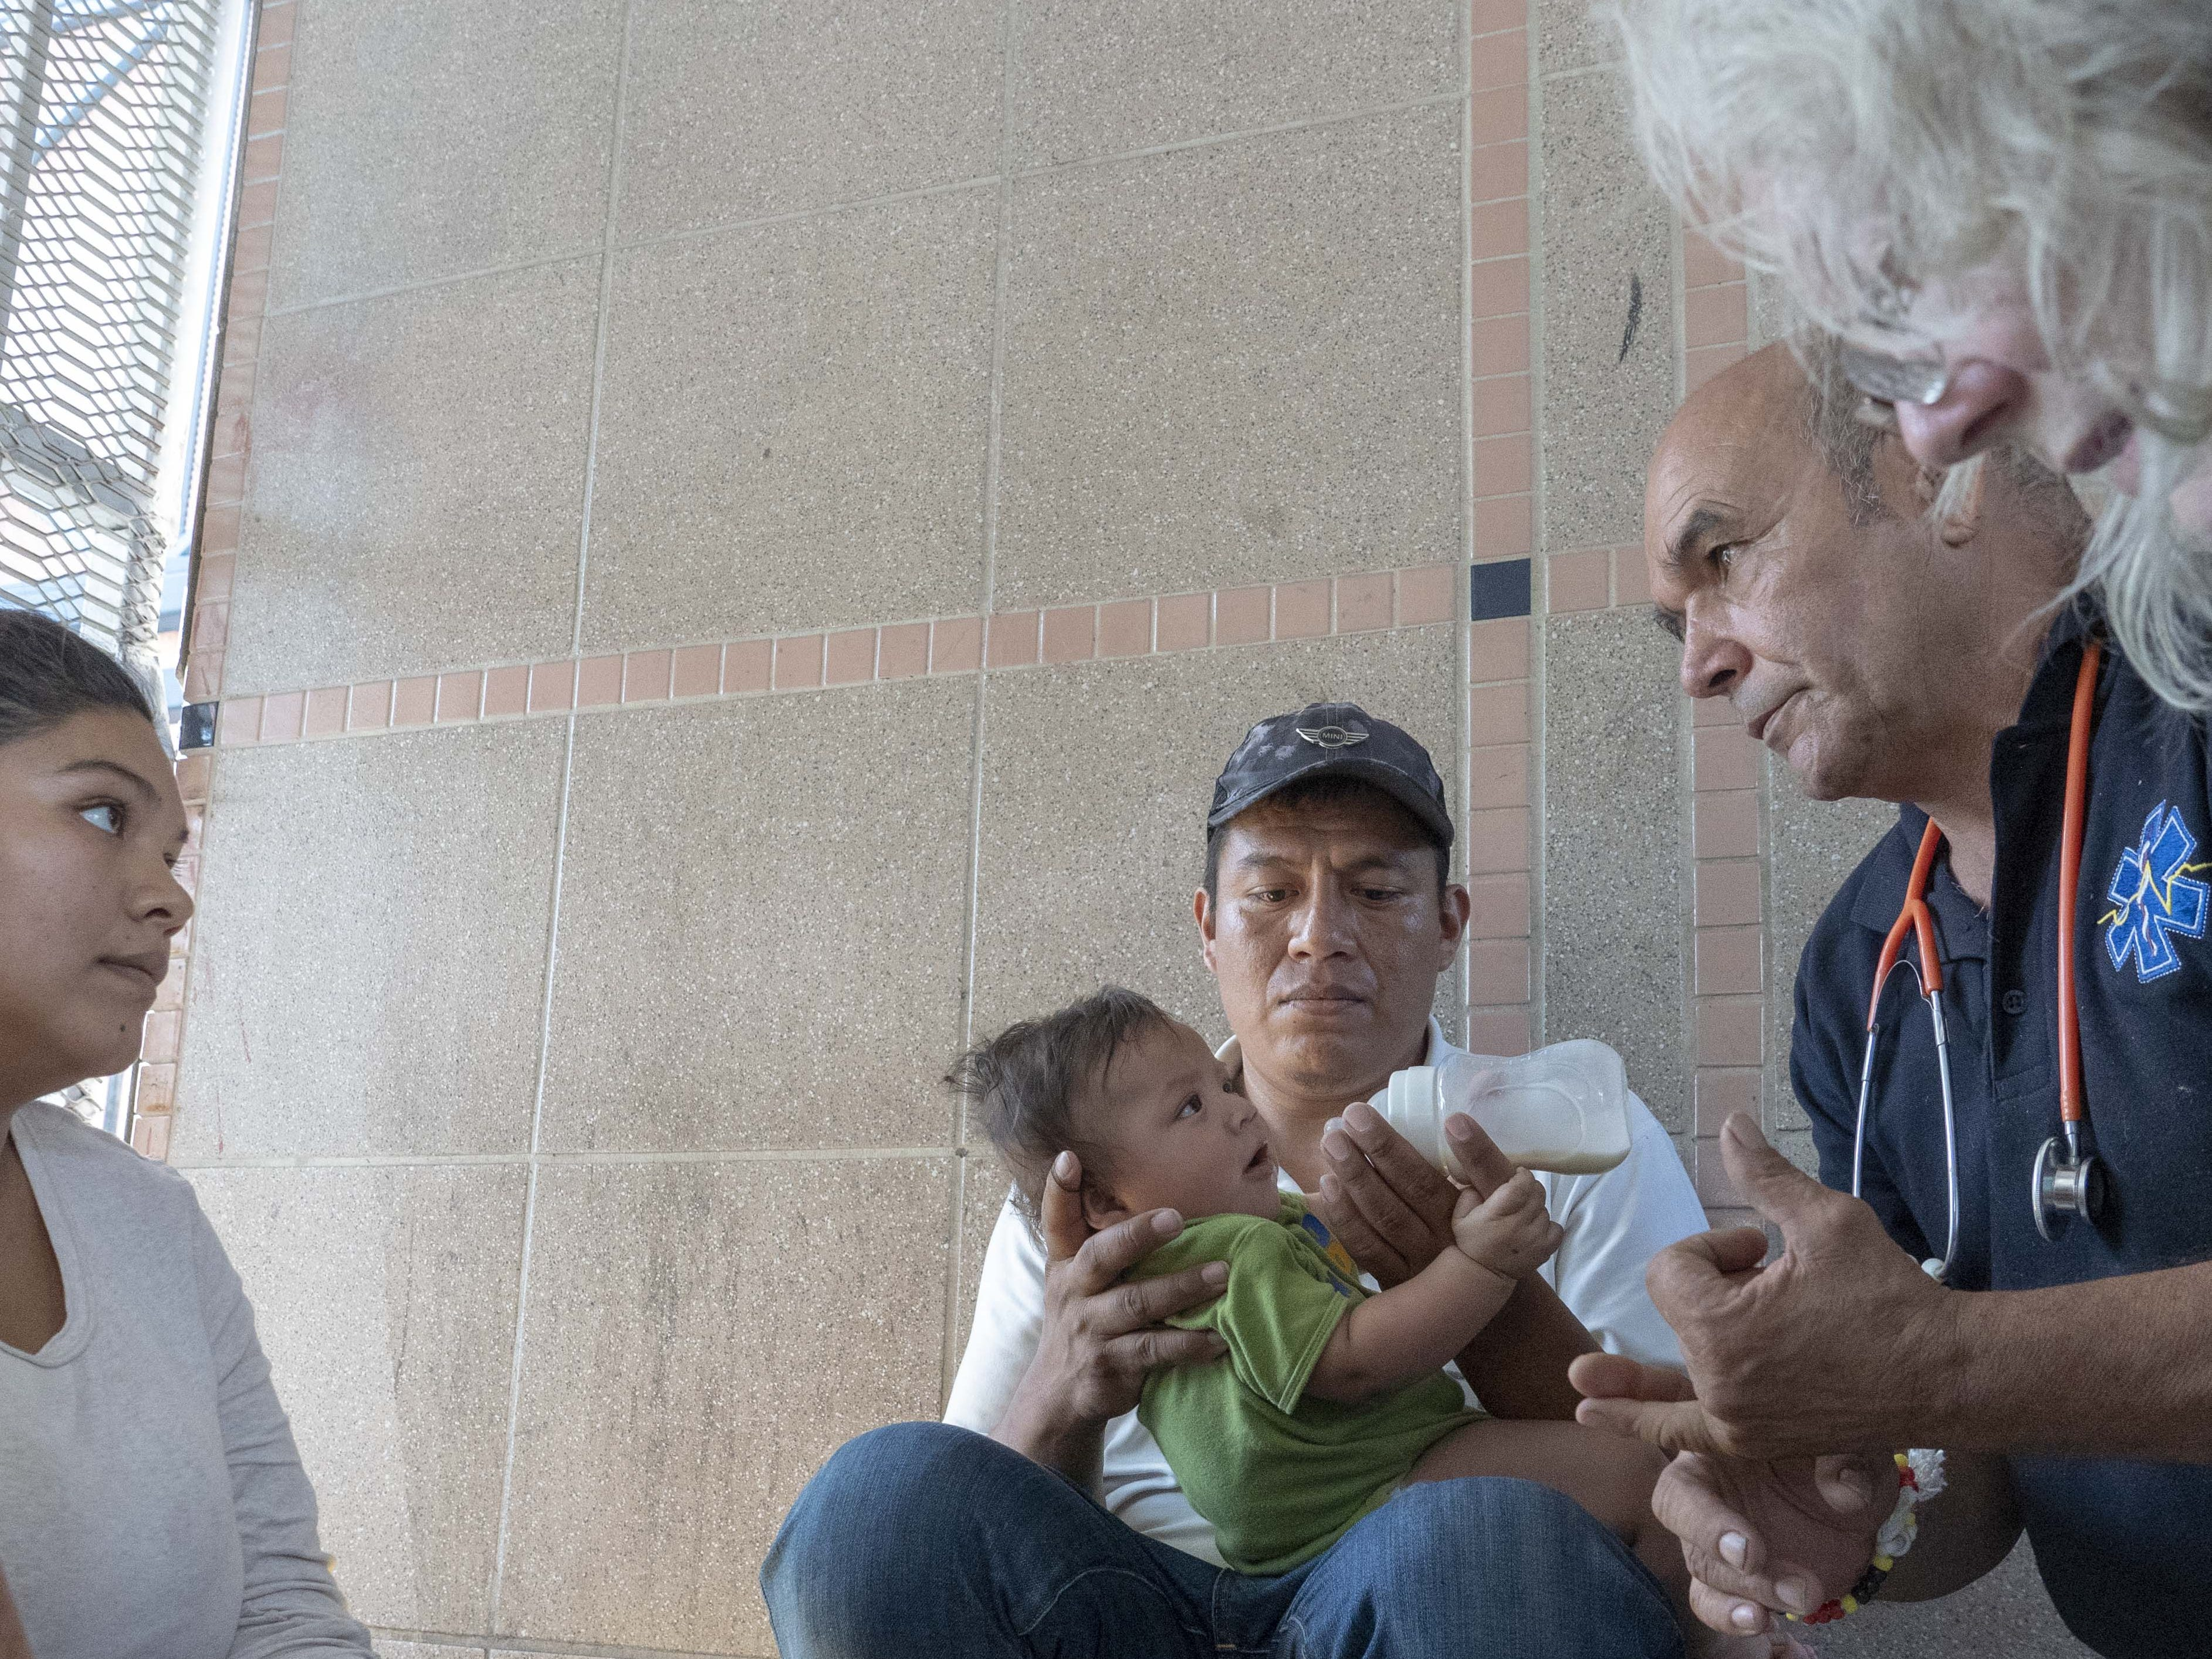 Elation Laguna Flores, Miriam Chino Gonzalez, and their baby, Ivan Laguna, get help from Frank Martin and Janice Pulliam at the DeConcini port of entry. Customs officers increased the processing of asylum seekers in Nogales, clearing the lengthy queue of asylum seekers in a matter of days.